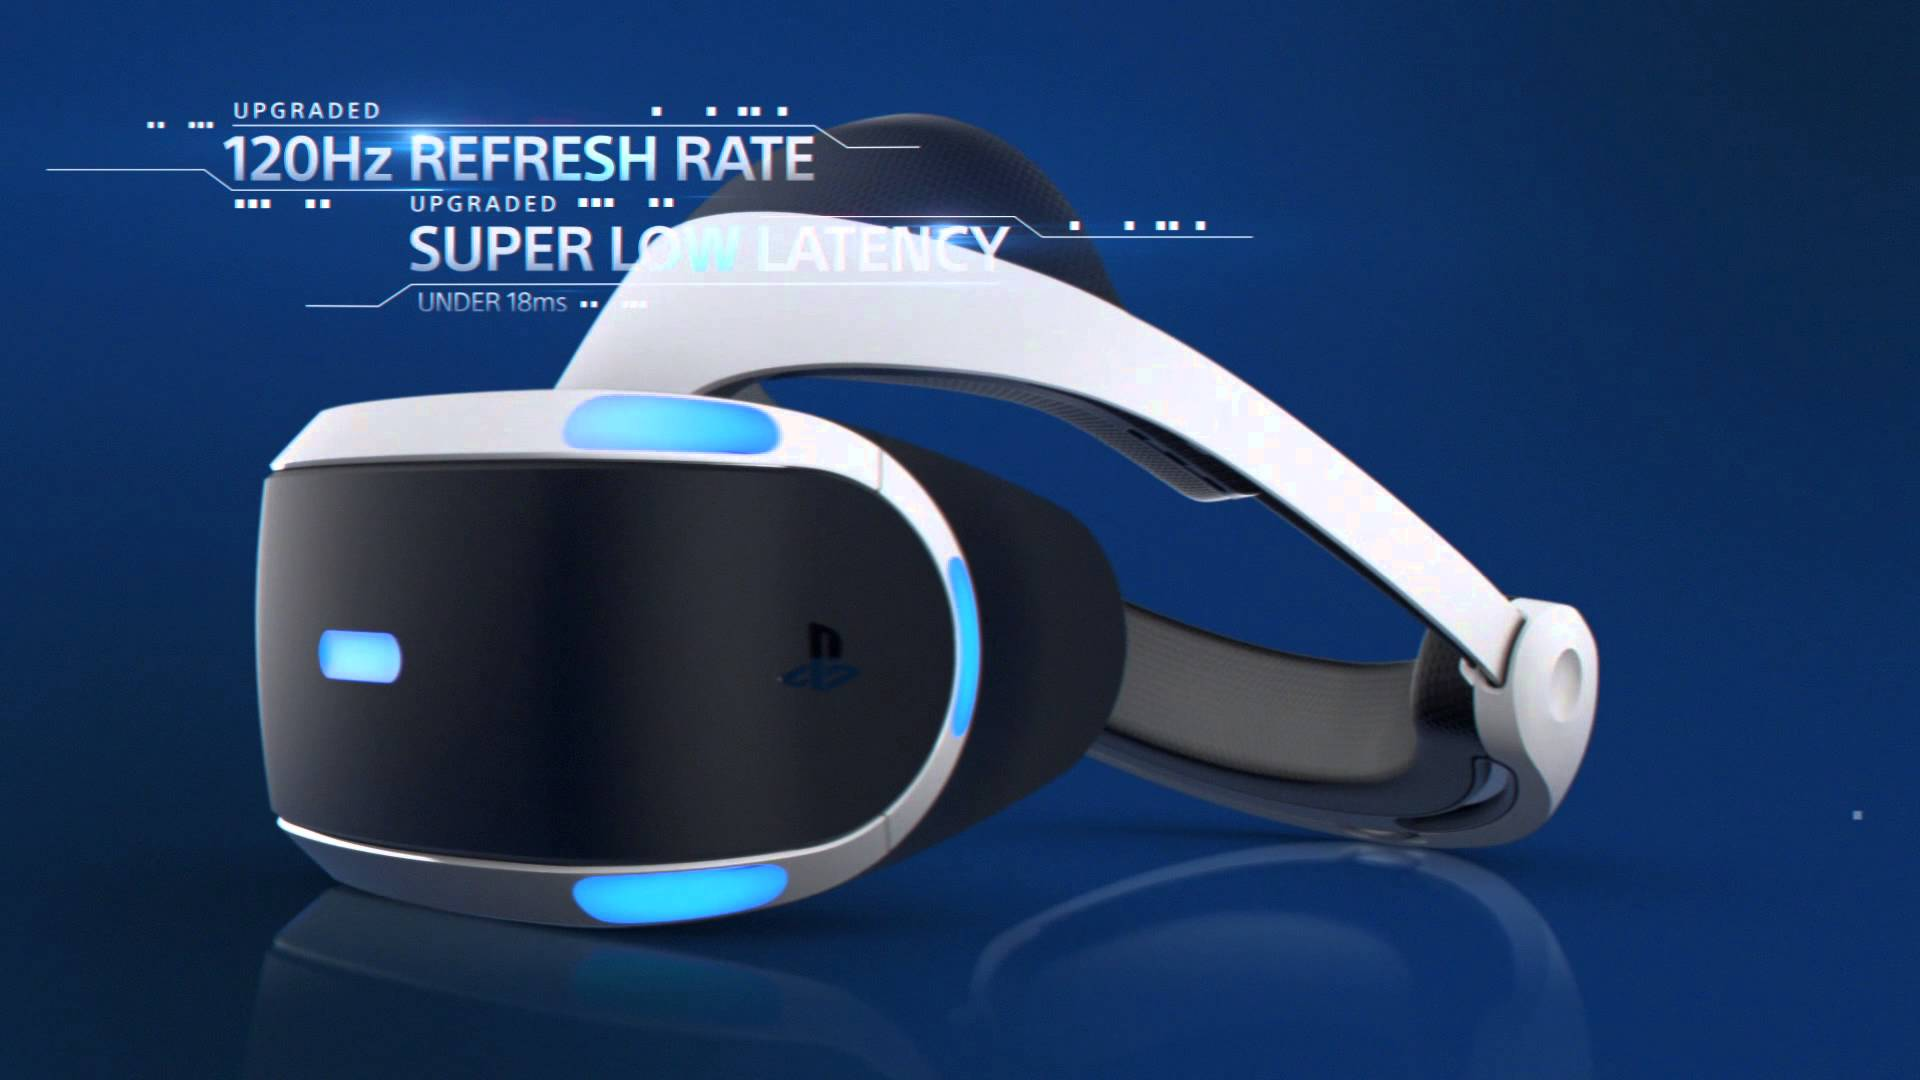 602dfd004ec New Sony Project Morpheus Video Highlights New Specs